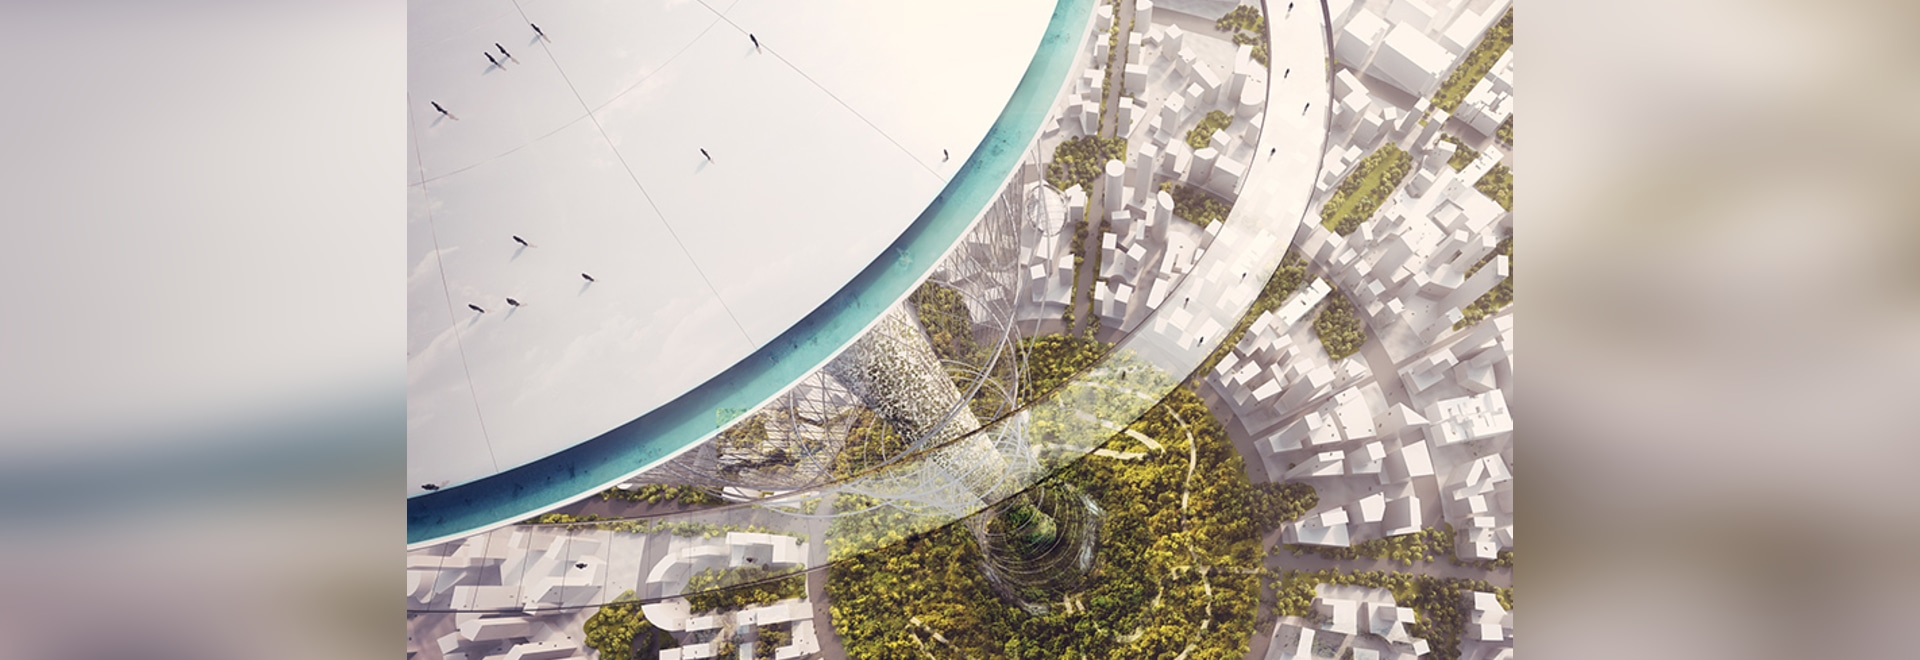 carlo ratti unveils plans for mile-high vertical park and observation deck